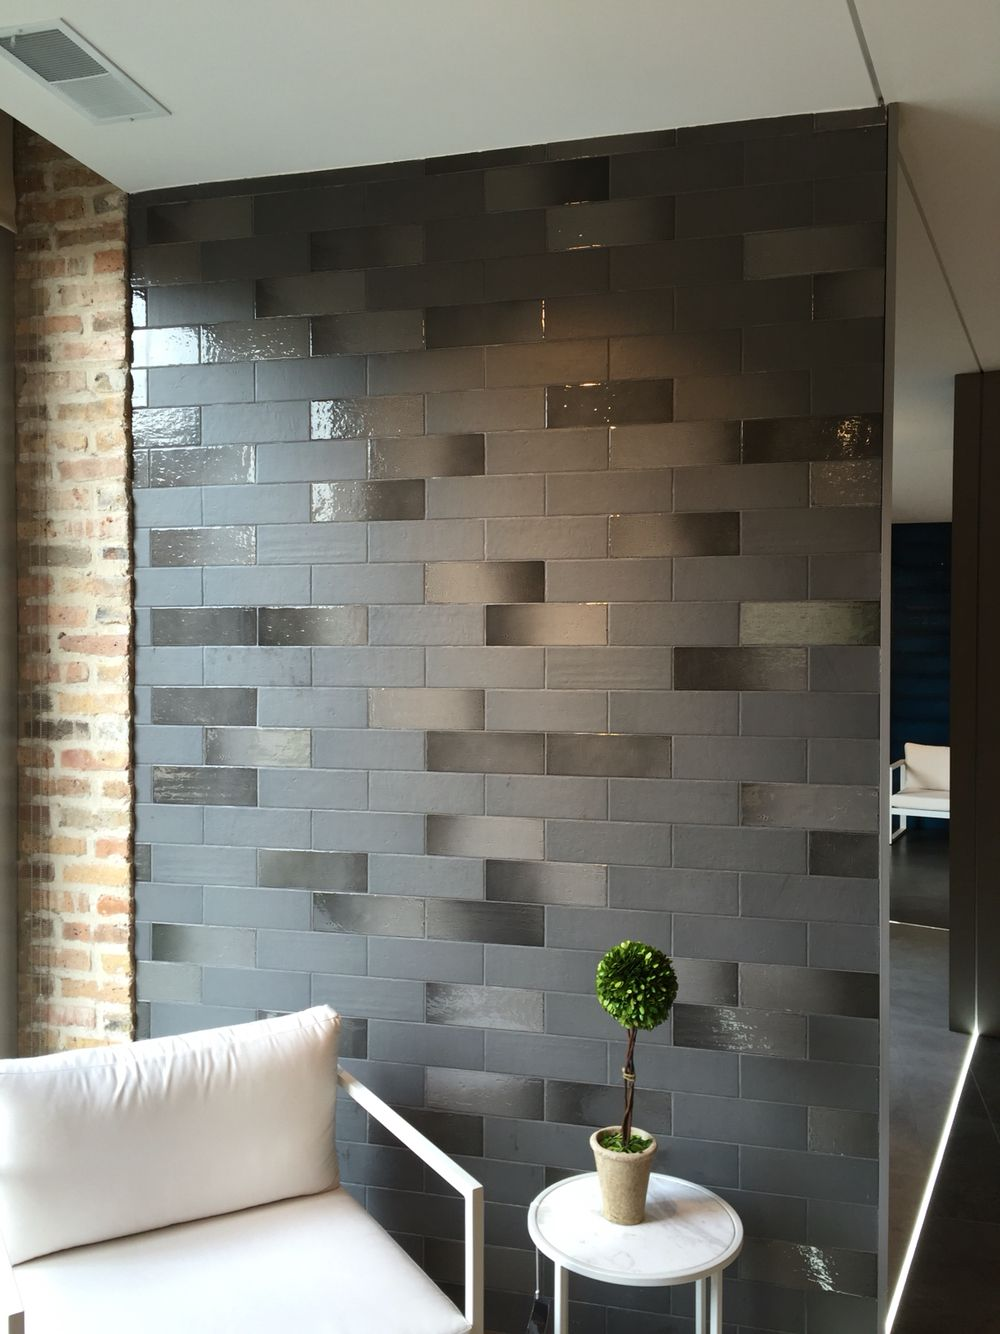 Stonepeak Aura 4x12 Wall Tile In Matte Gloss Mix Color Slate Accent Walls In Living Room Tile Accent Wall Living Room Tile Accent Wall